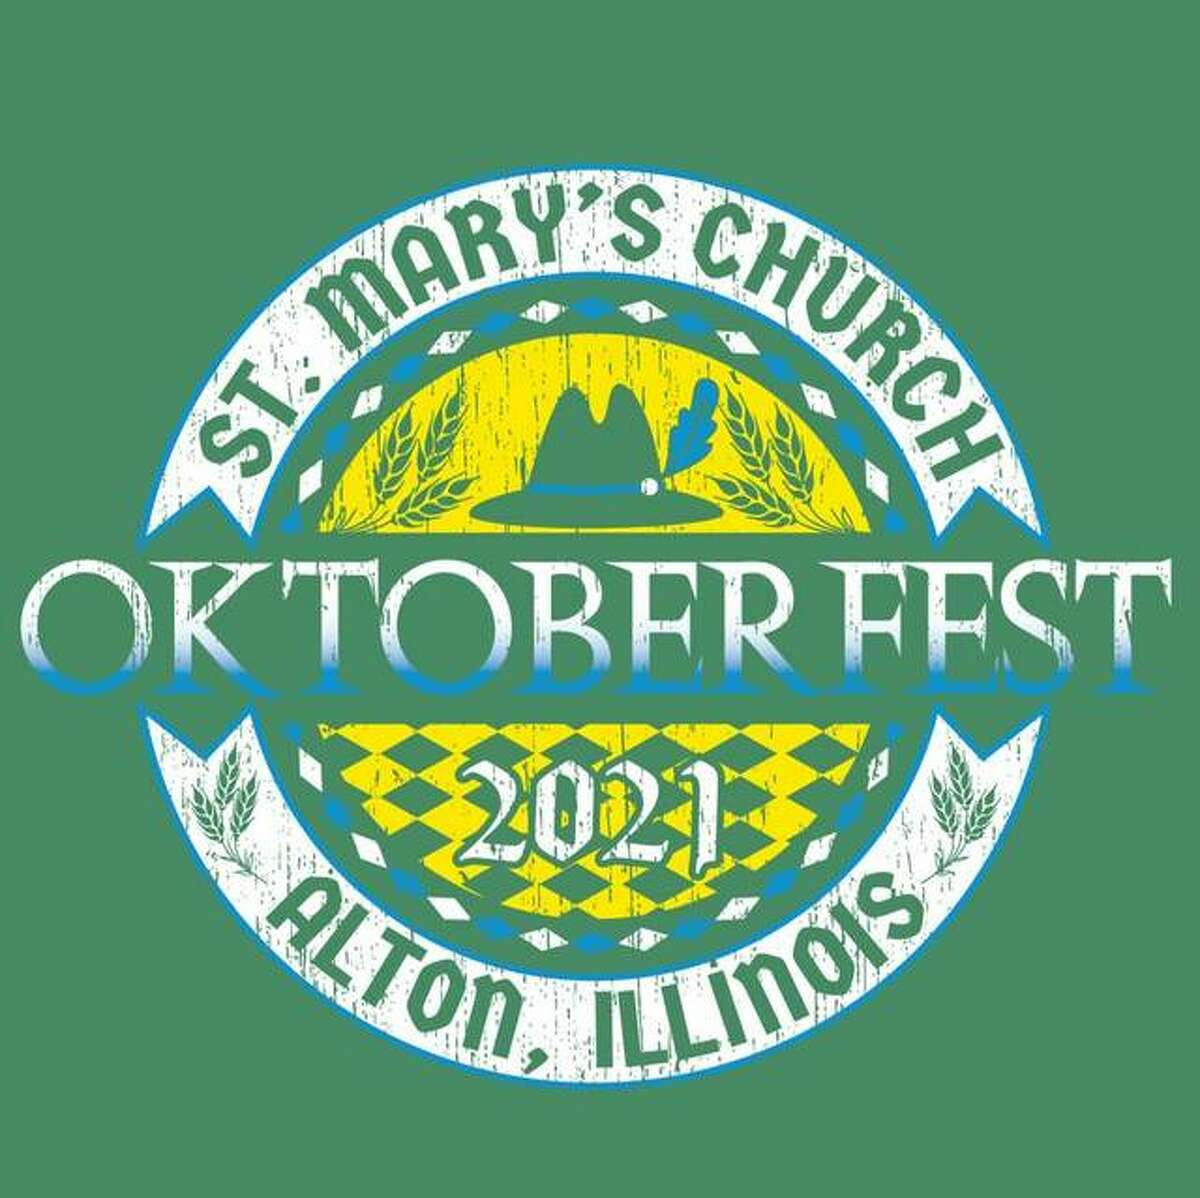 St. Mary's Oktoberfest will kick off Friday, Oct. 8 from 7-11 p.m. at St. Mary's Catholic Church, 519 E. 4th St., in Alton. The festival will continue through Sunday, Oct. 10.